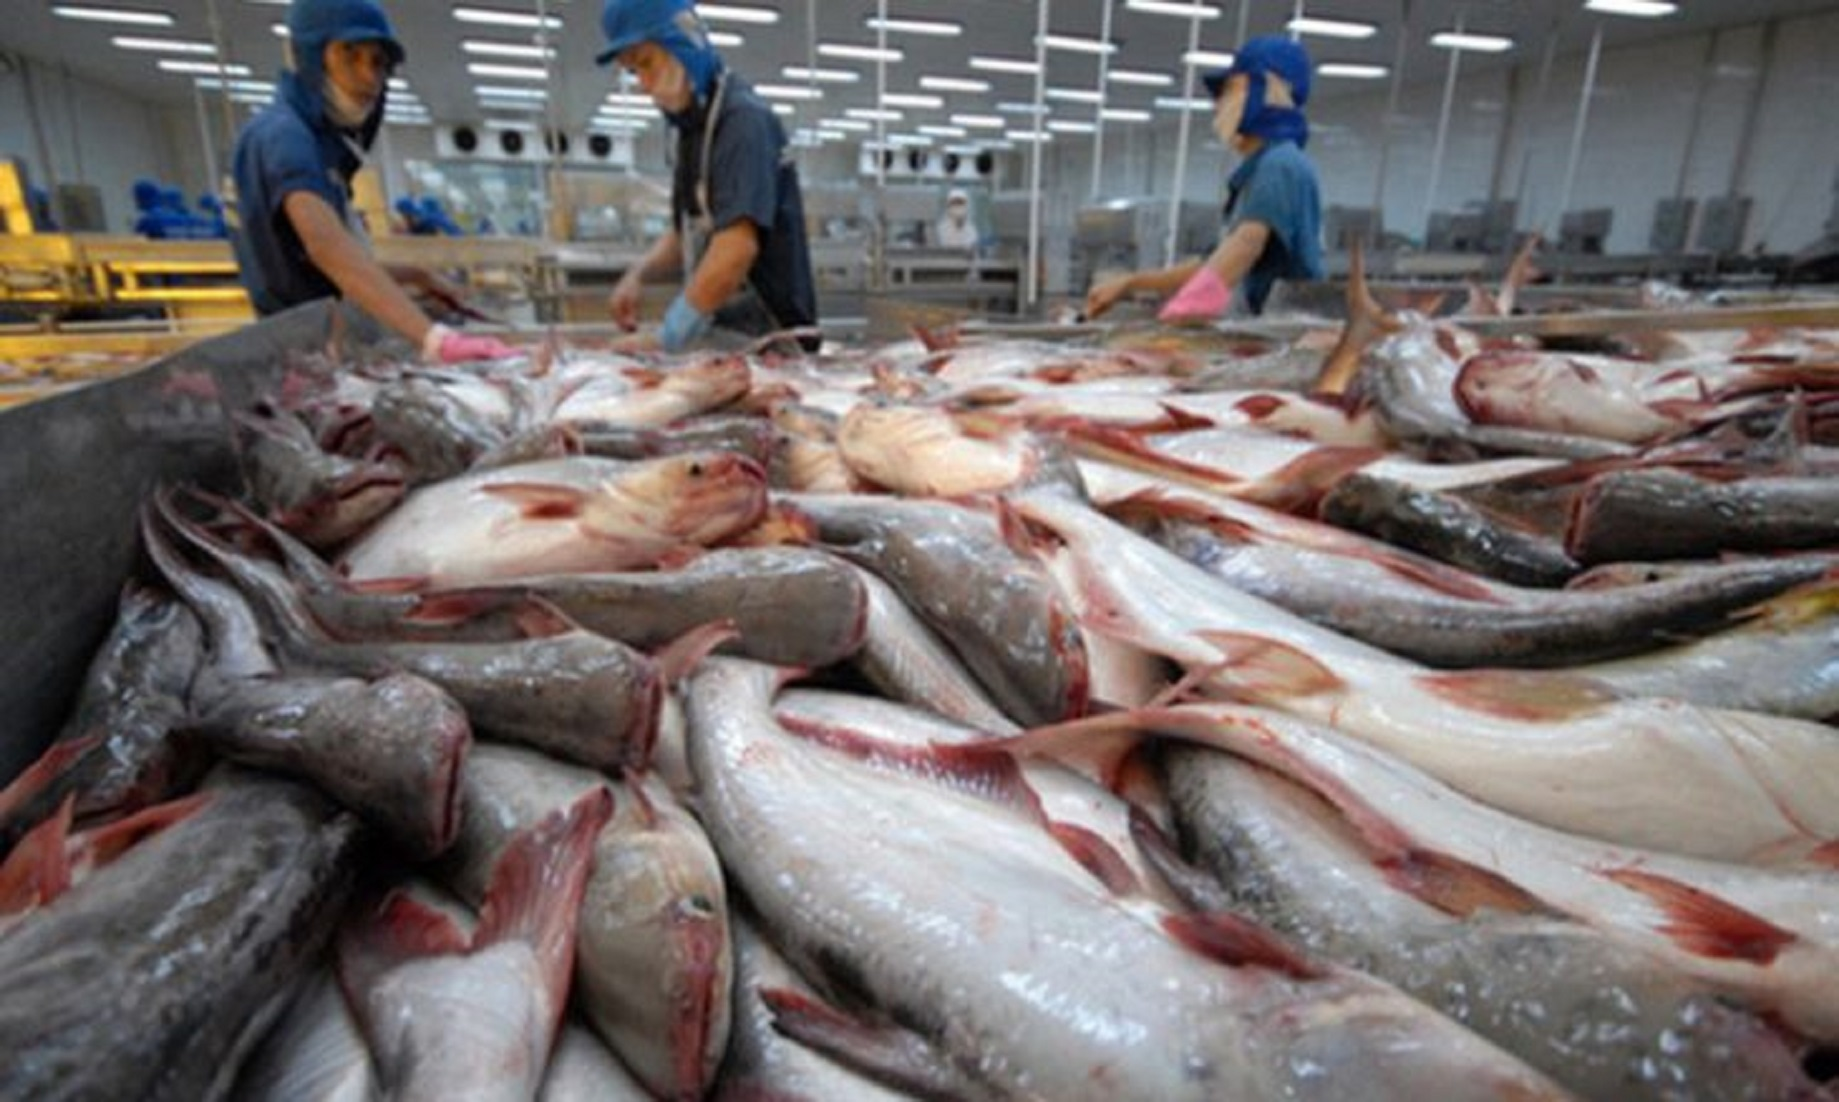 Feature: Israeli Closure Of The Only Commercial Crossing, Inflicts Huge Losses On Gazan Fish Farms